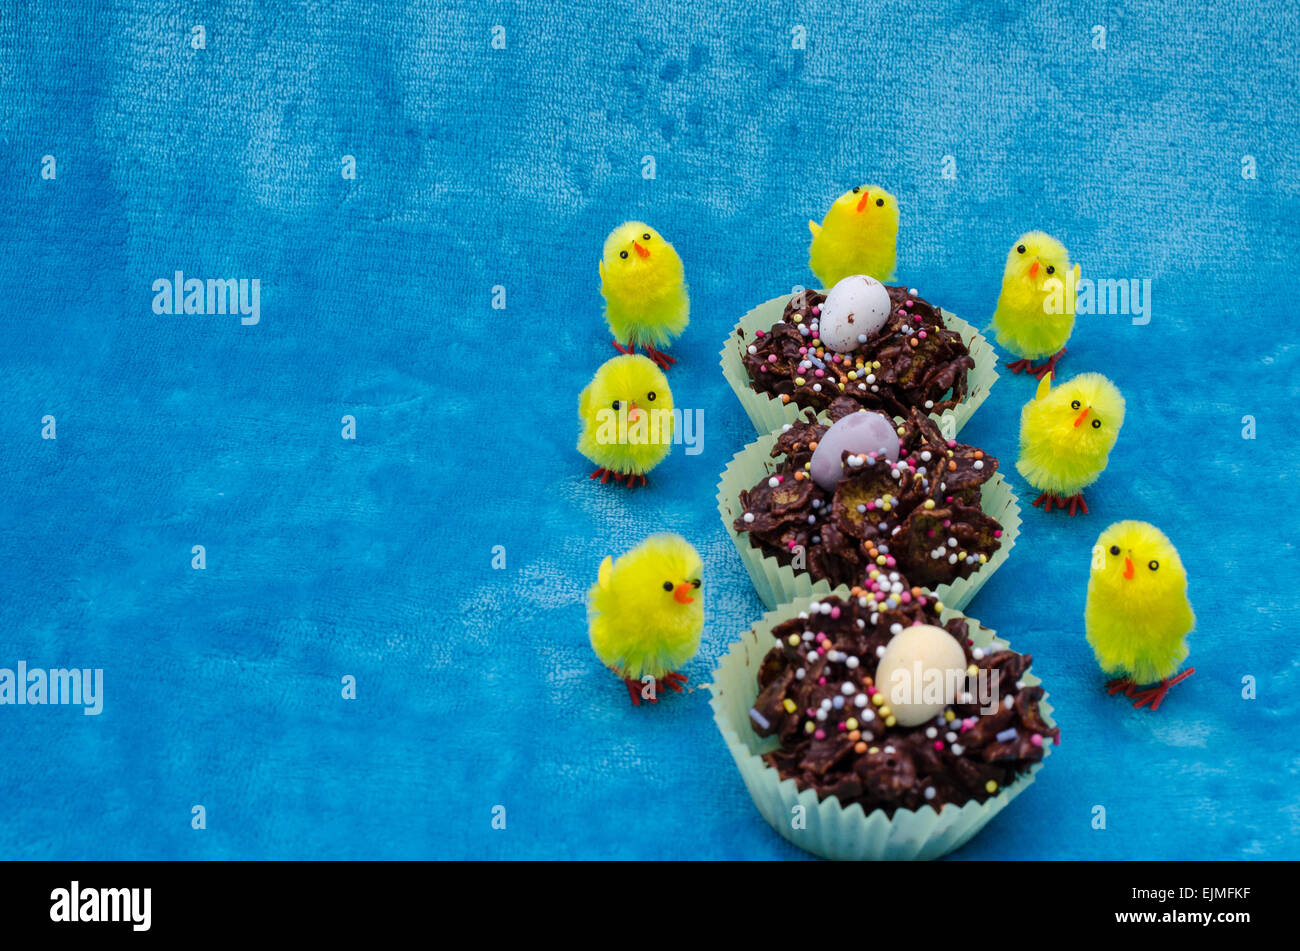 Perfect picture for celebrating Easter. Three cornflake cakes in a row are surrounded by little baby yellow toy - Stock Image